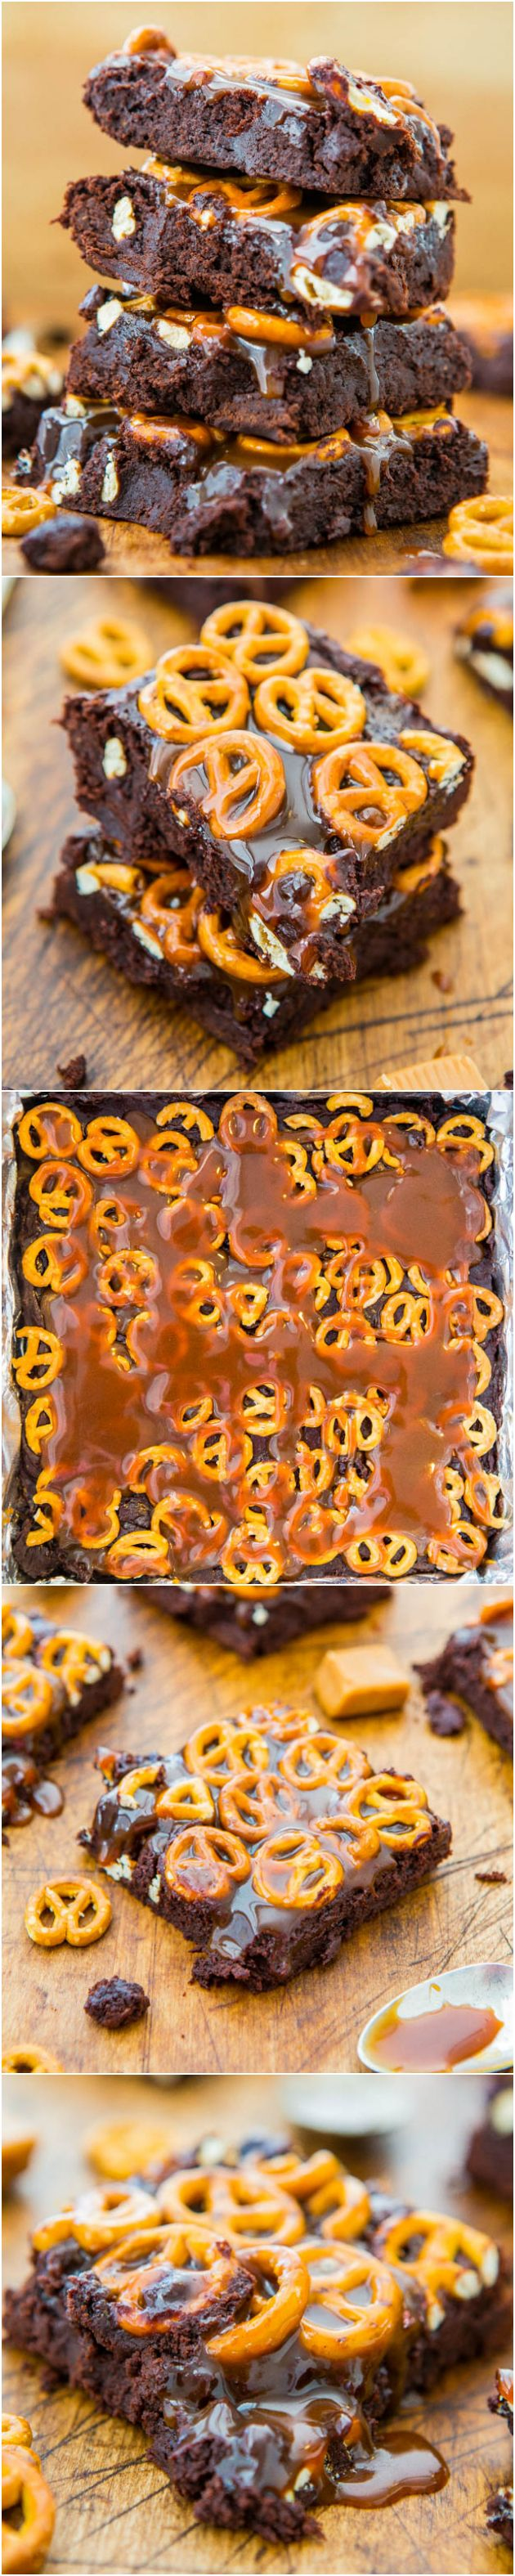 Salted Caramel Pretzel Fudgy Brownies - Supremely fudgy scratch brownies as easy as a mix. Salty-and-sweet & dripping in caramel!